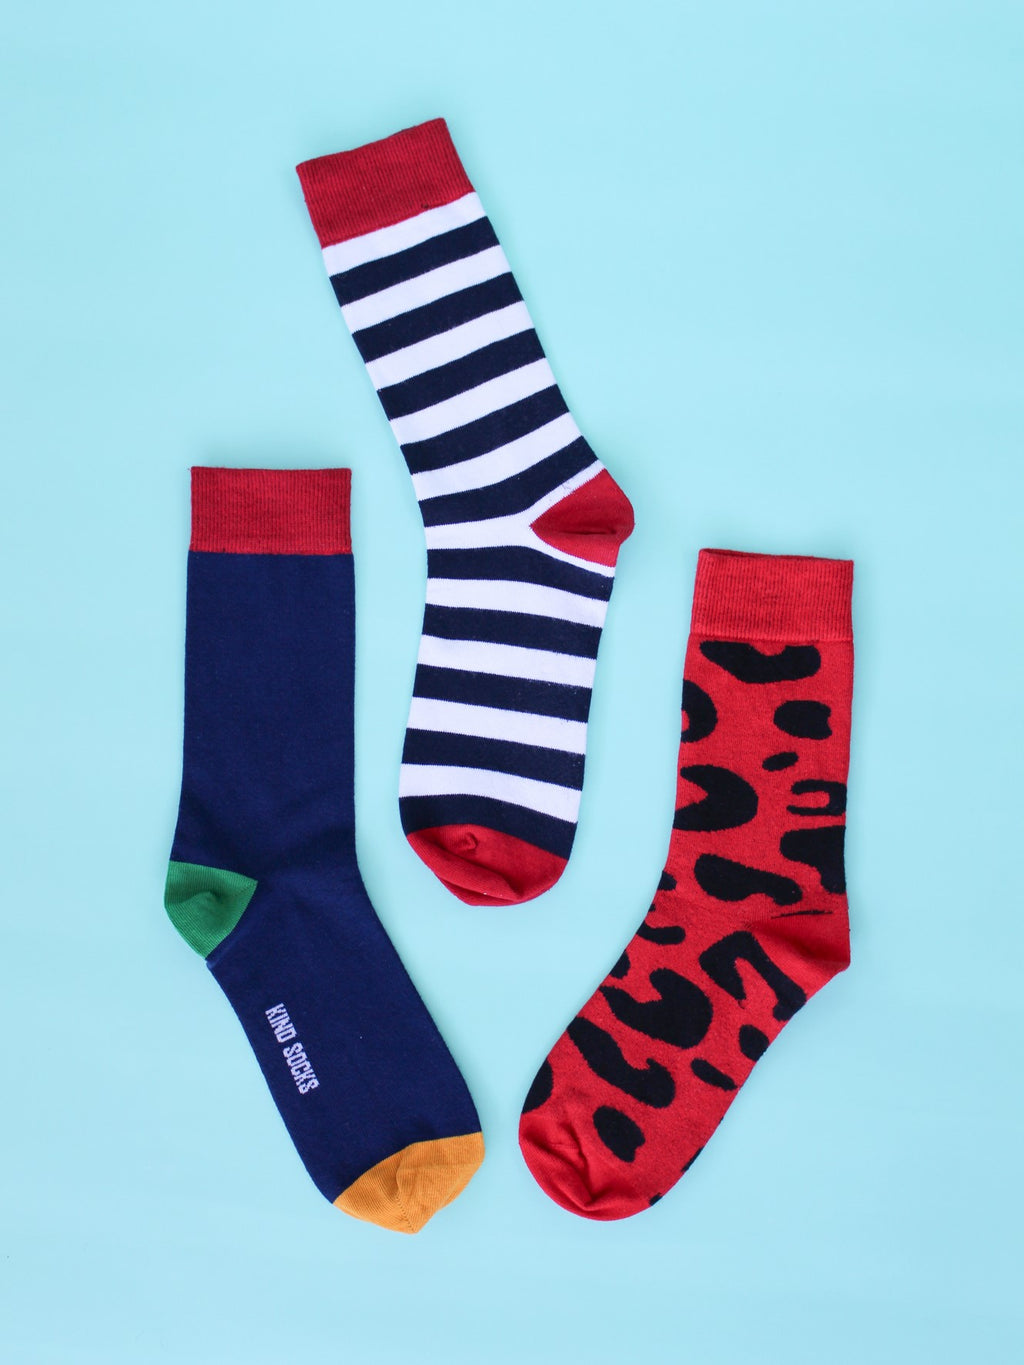 Navy blue organic kind socks with a mustard toe, lime green heel and red ankle trim, navy blue and white striped organic kind socks with a bright red trim and bold red organic kind socks with a black leopard-print design and laid out on a teal blue backdrop.